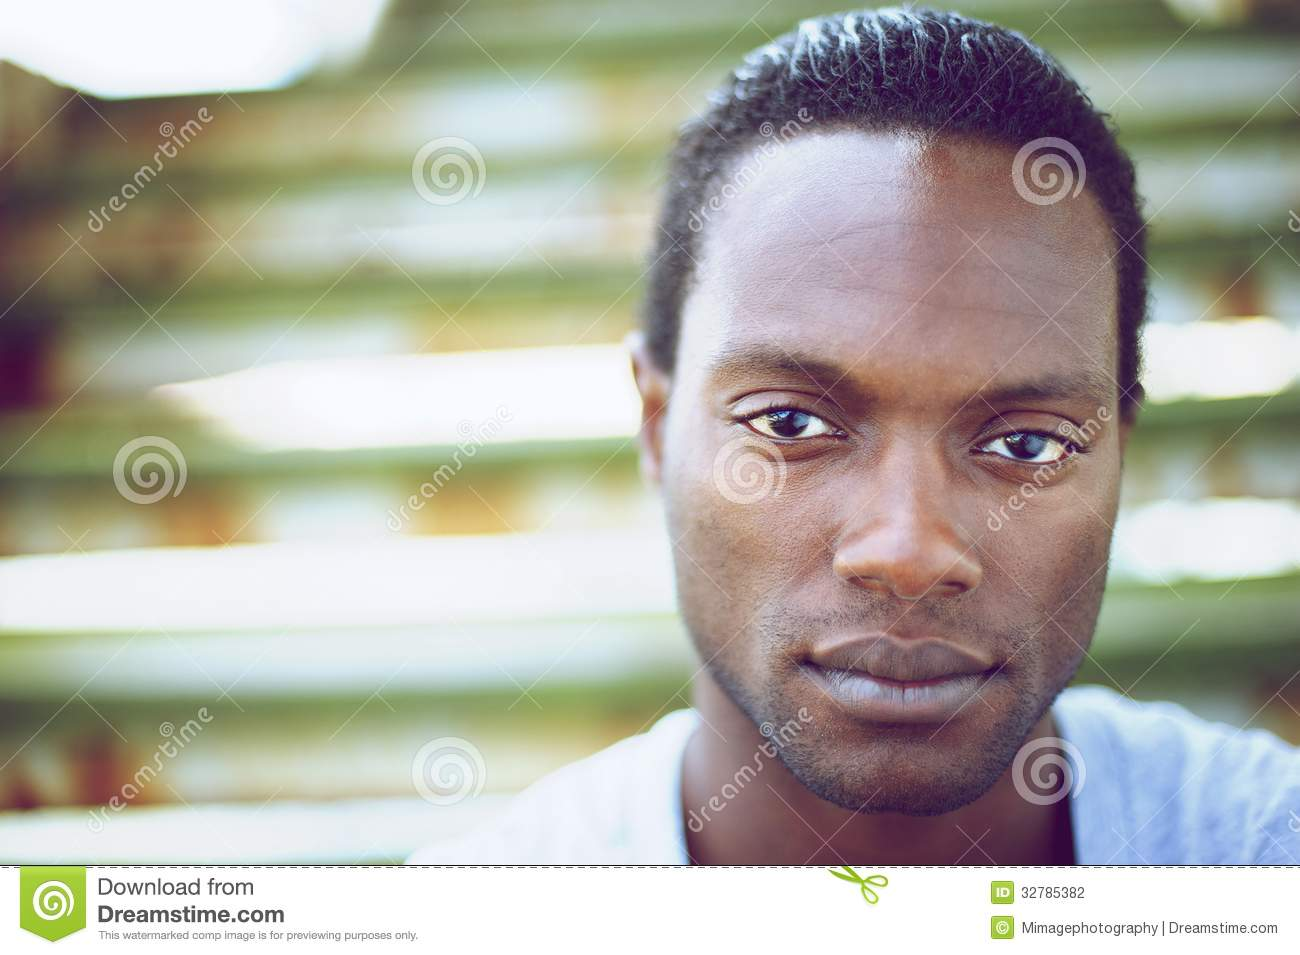 3f3b06b15f71 Portrait Of A Handsome Black Man Looking At Camera Stock Photo ...